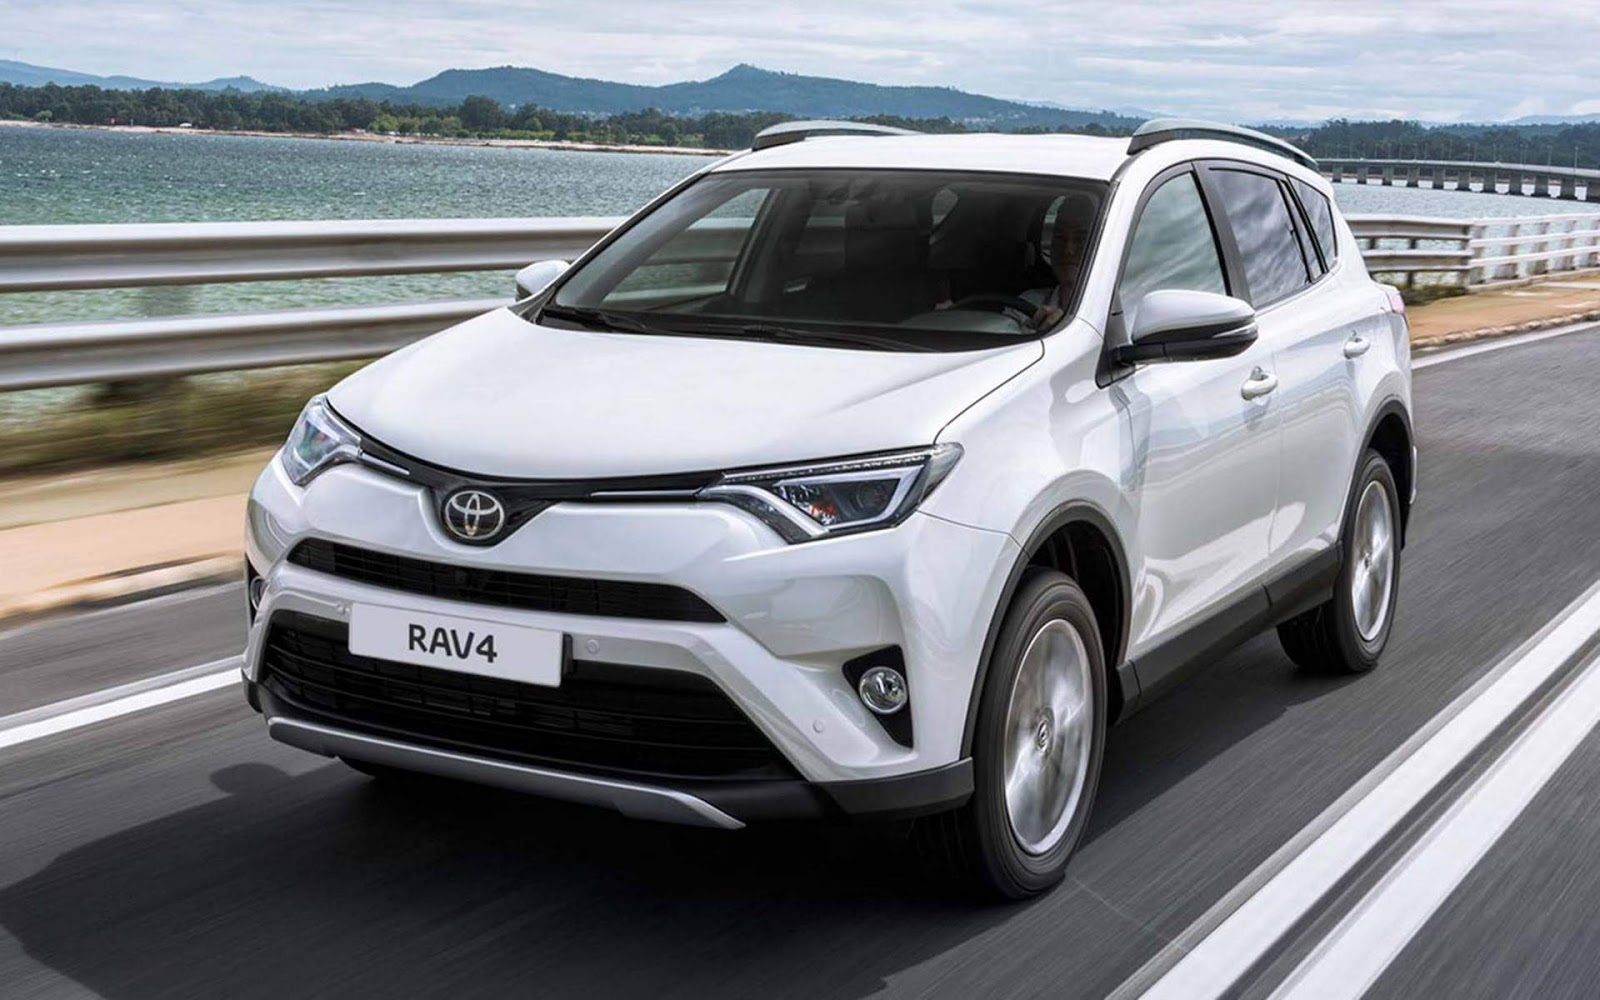 toyota rav4 2018 pre o consumo e especifica es car blog br. Black Bedroom Furniture Sets. Home Design Ideas